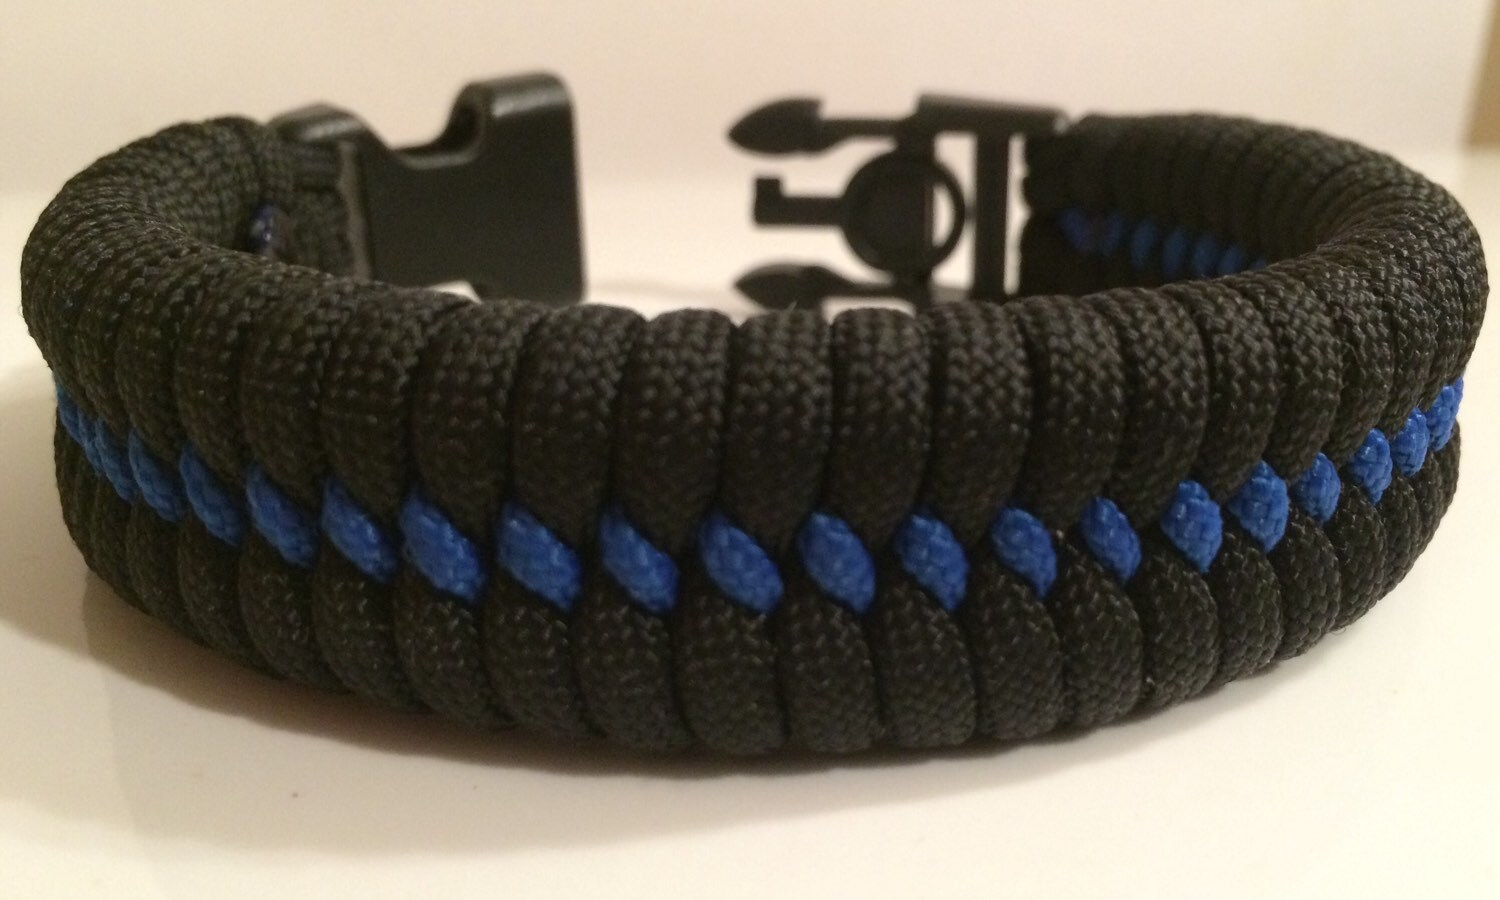 adjustable bracelet collar product provide line main helps dog thinblueline armor thin blue image body paracord